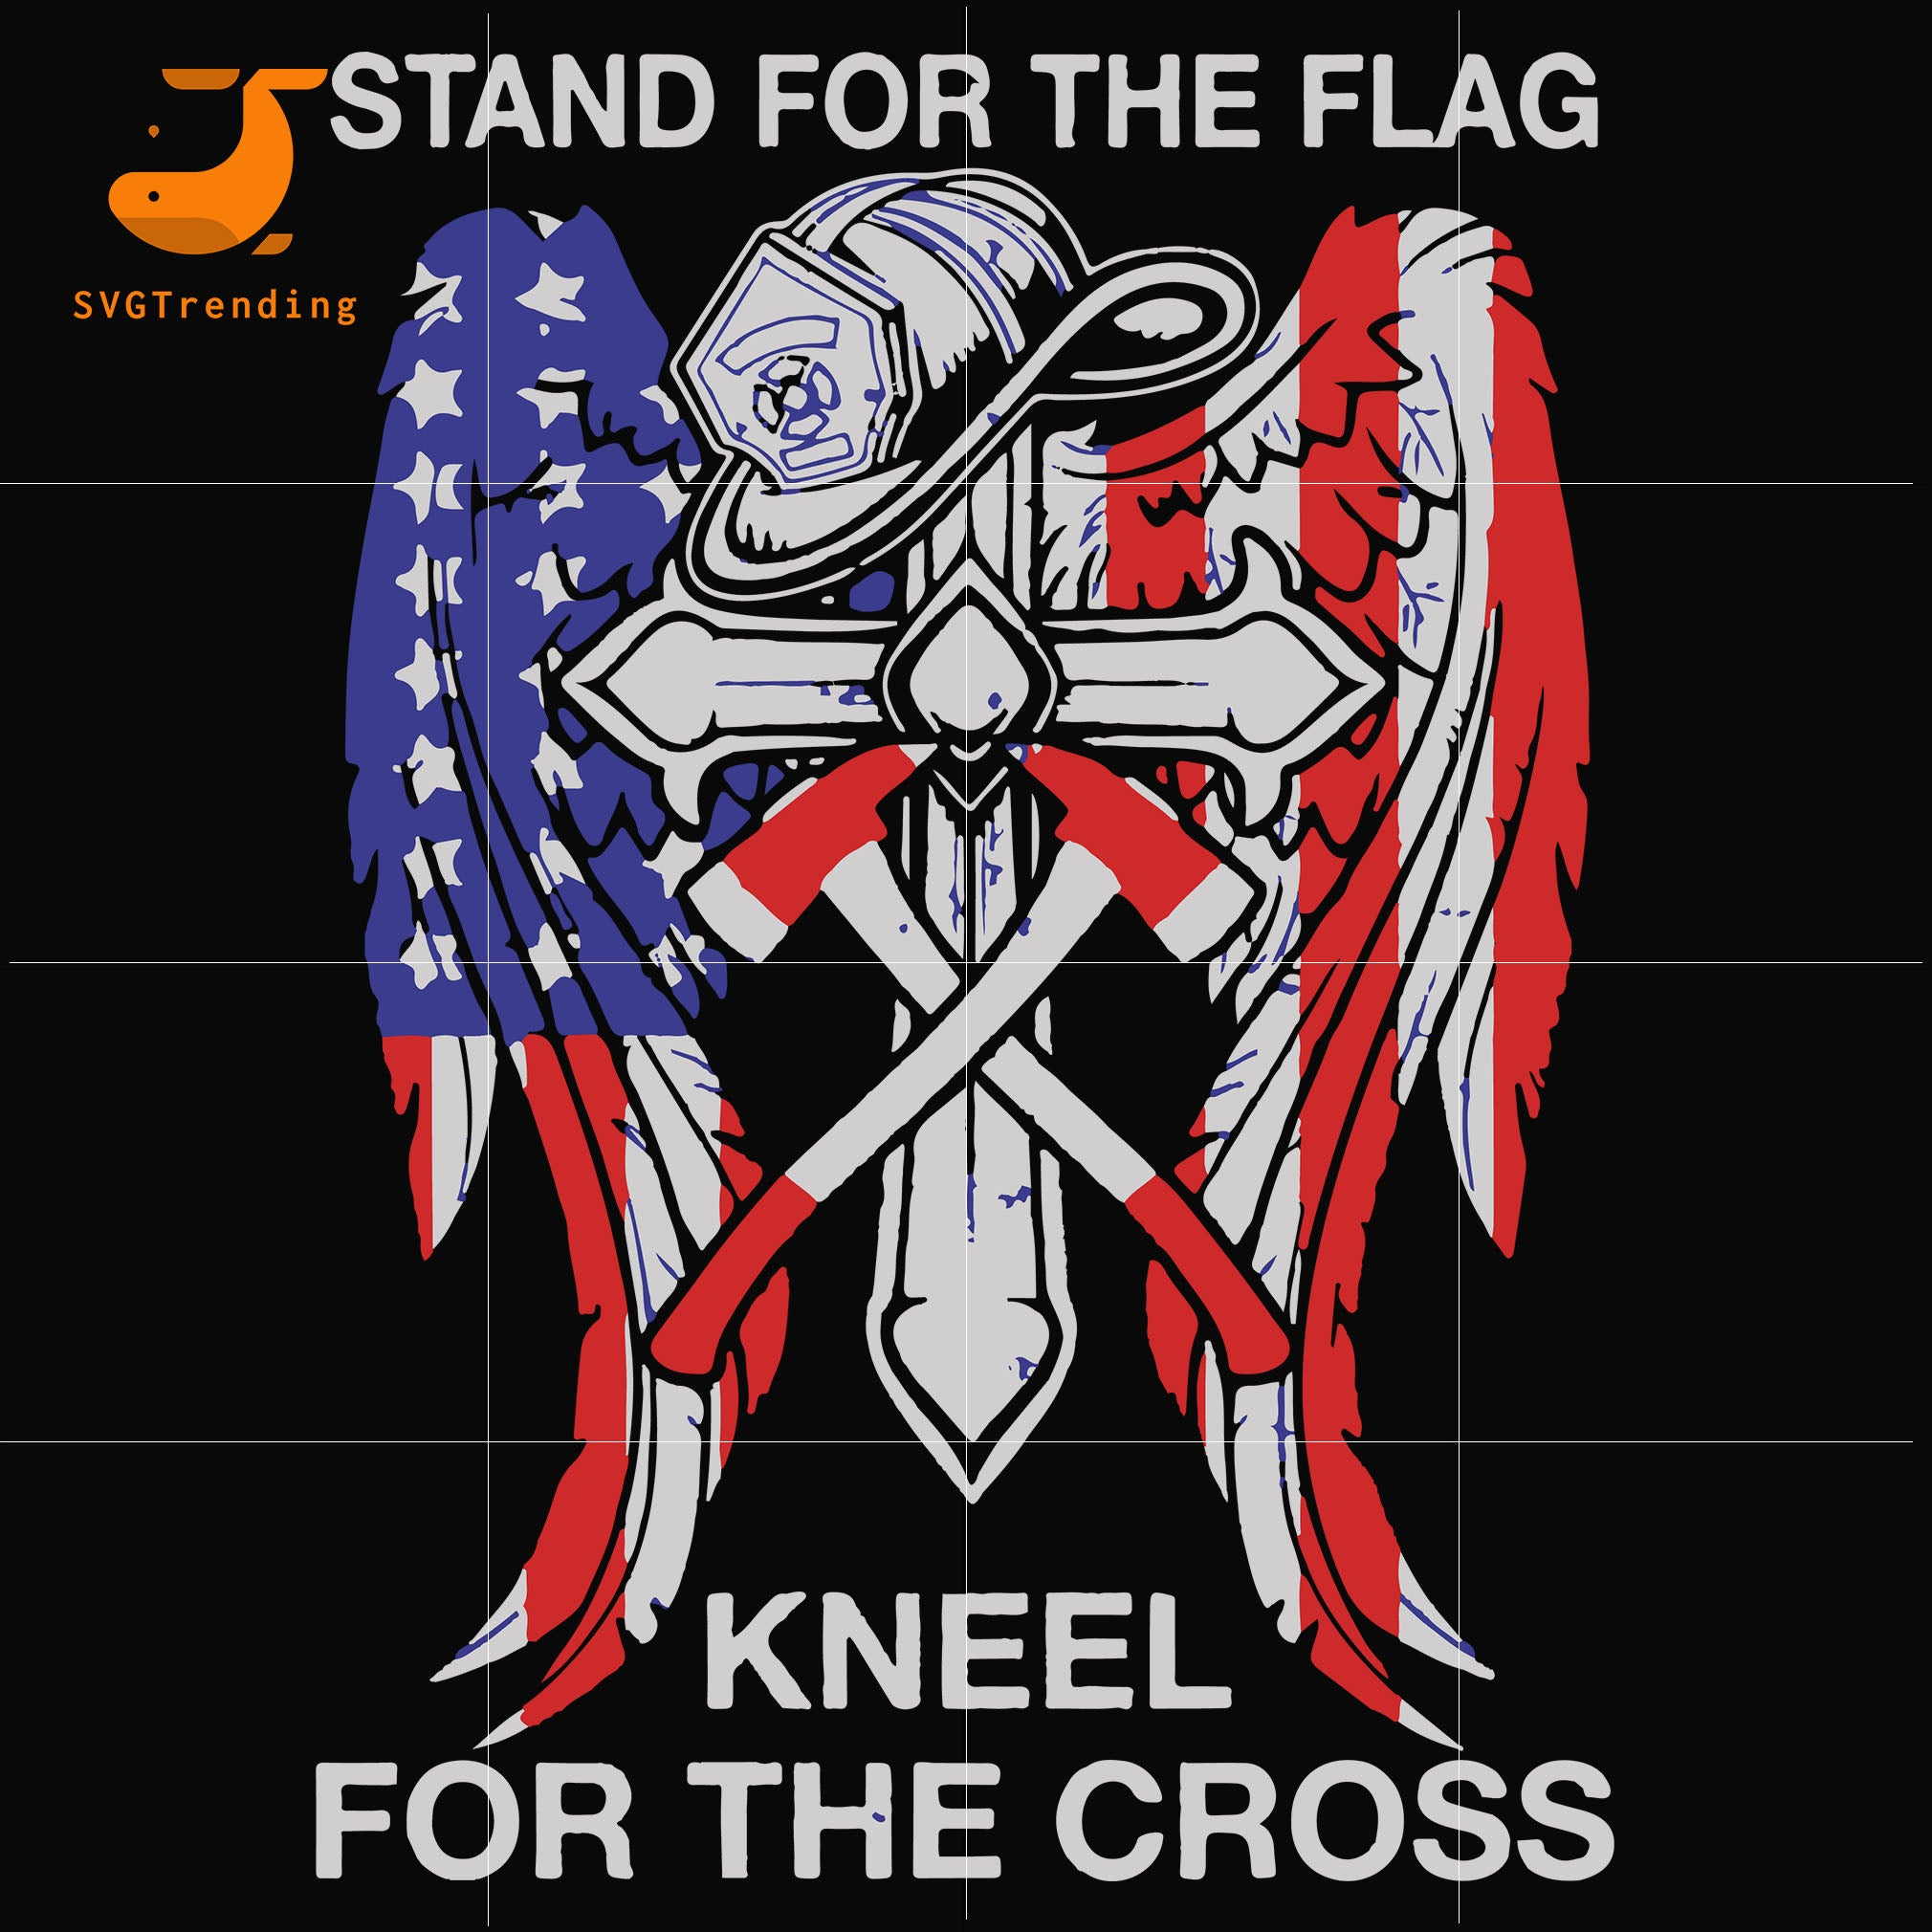 I Stand For The Flag, I Kneel For The Cross svg, png, dxf, eps, digital file